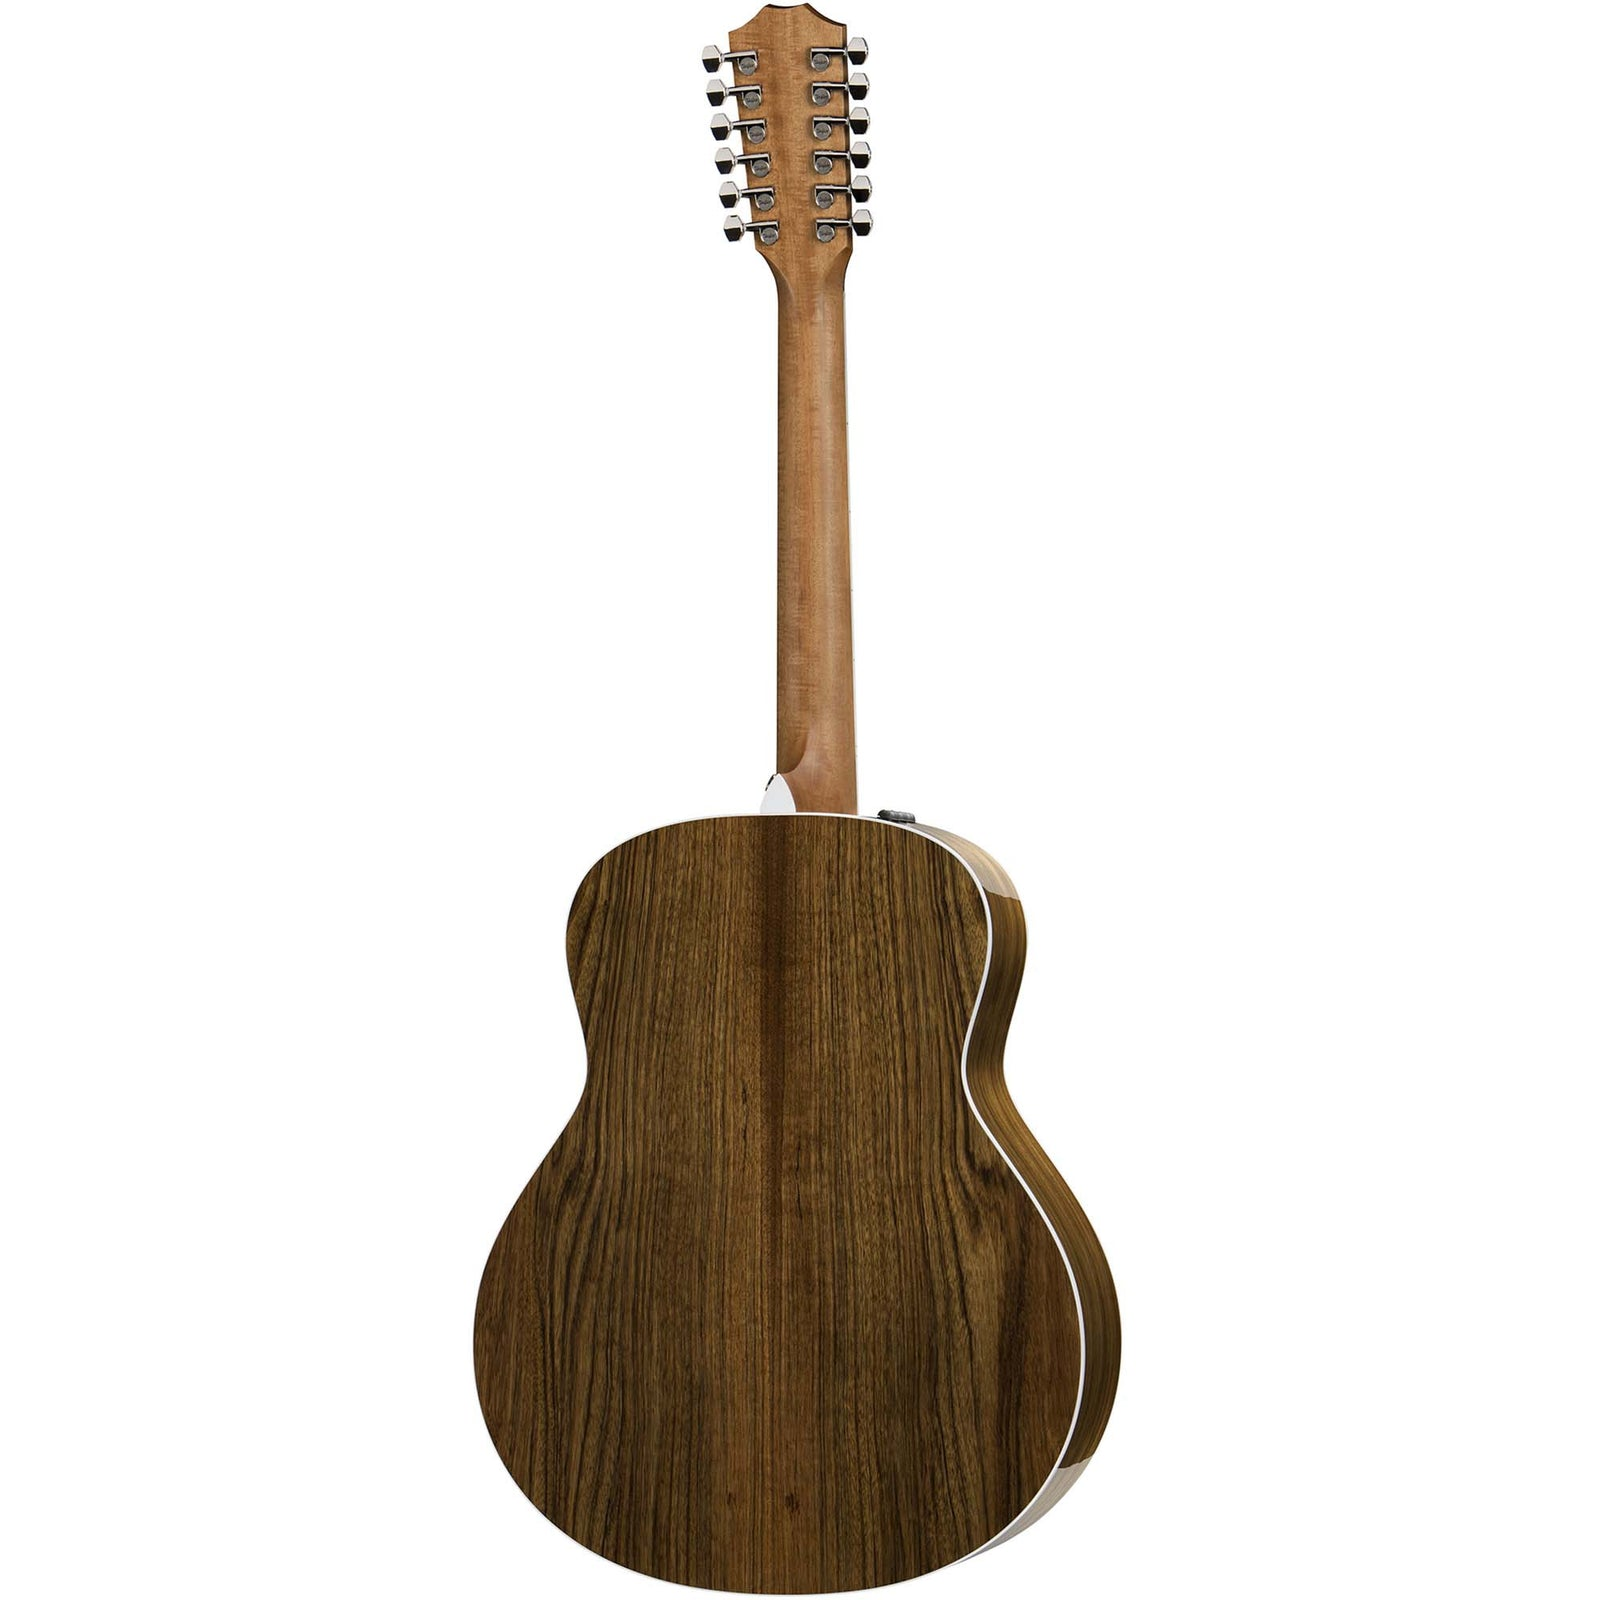 Taylor 458E Spruce Grand Orchestra 12-String - Natural